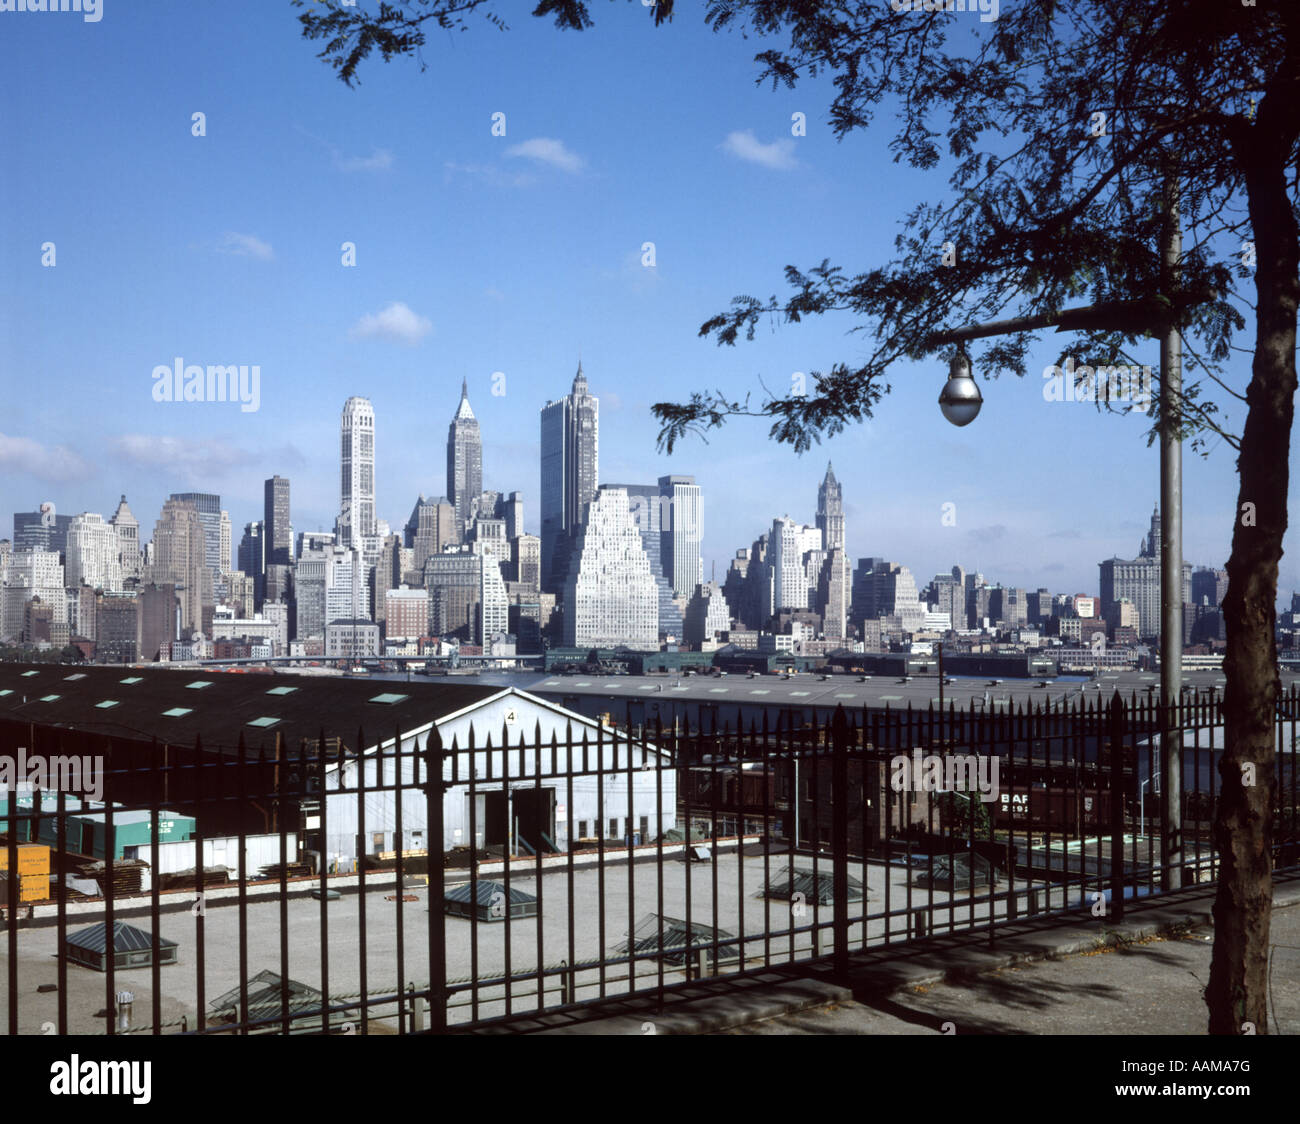 New York Skyline 1960s Stock Photos & New York Skyline